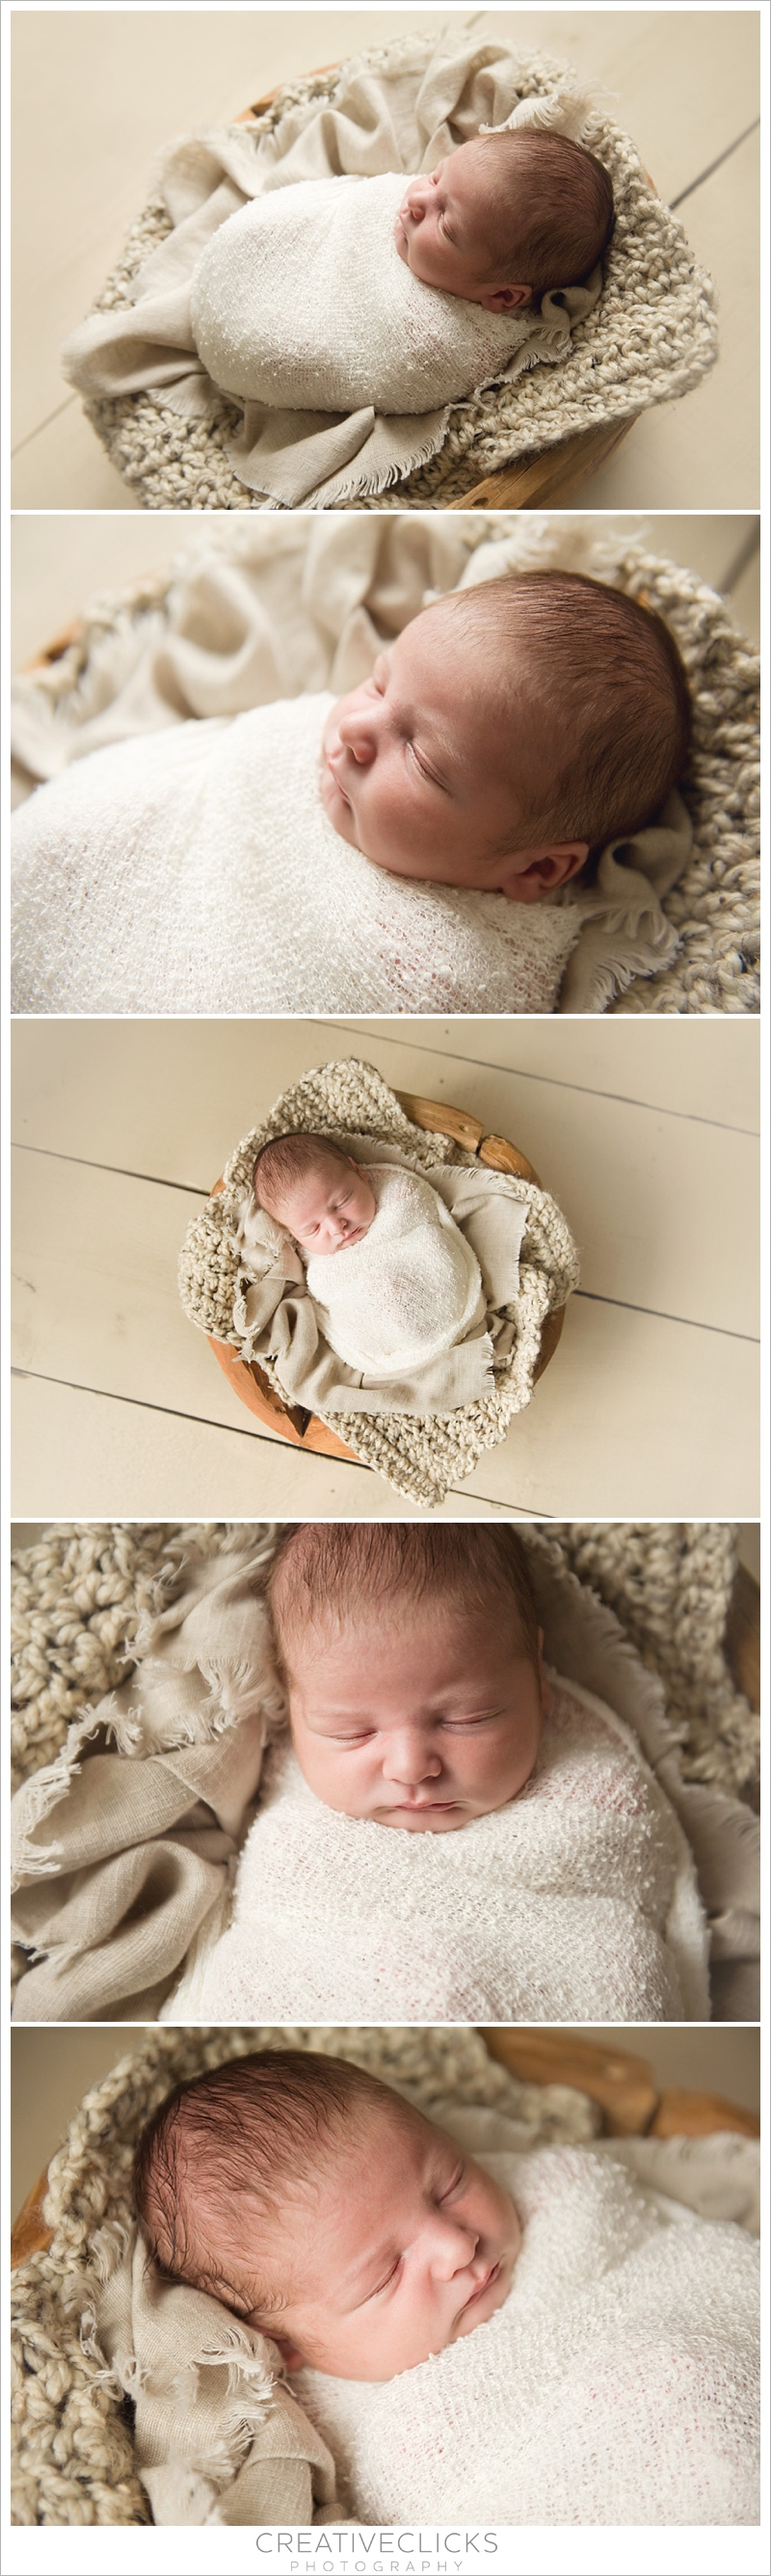 Newborn baby boy wrapped up in wooden driftwood bowl